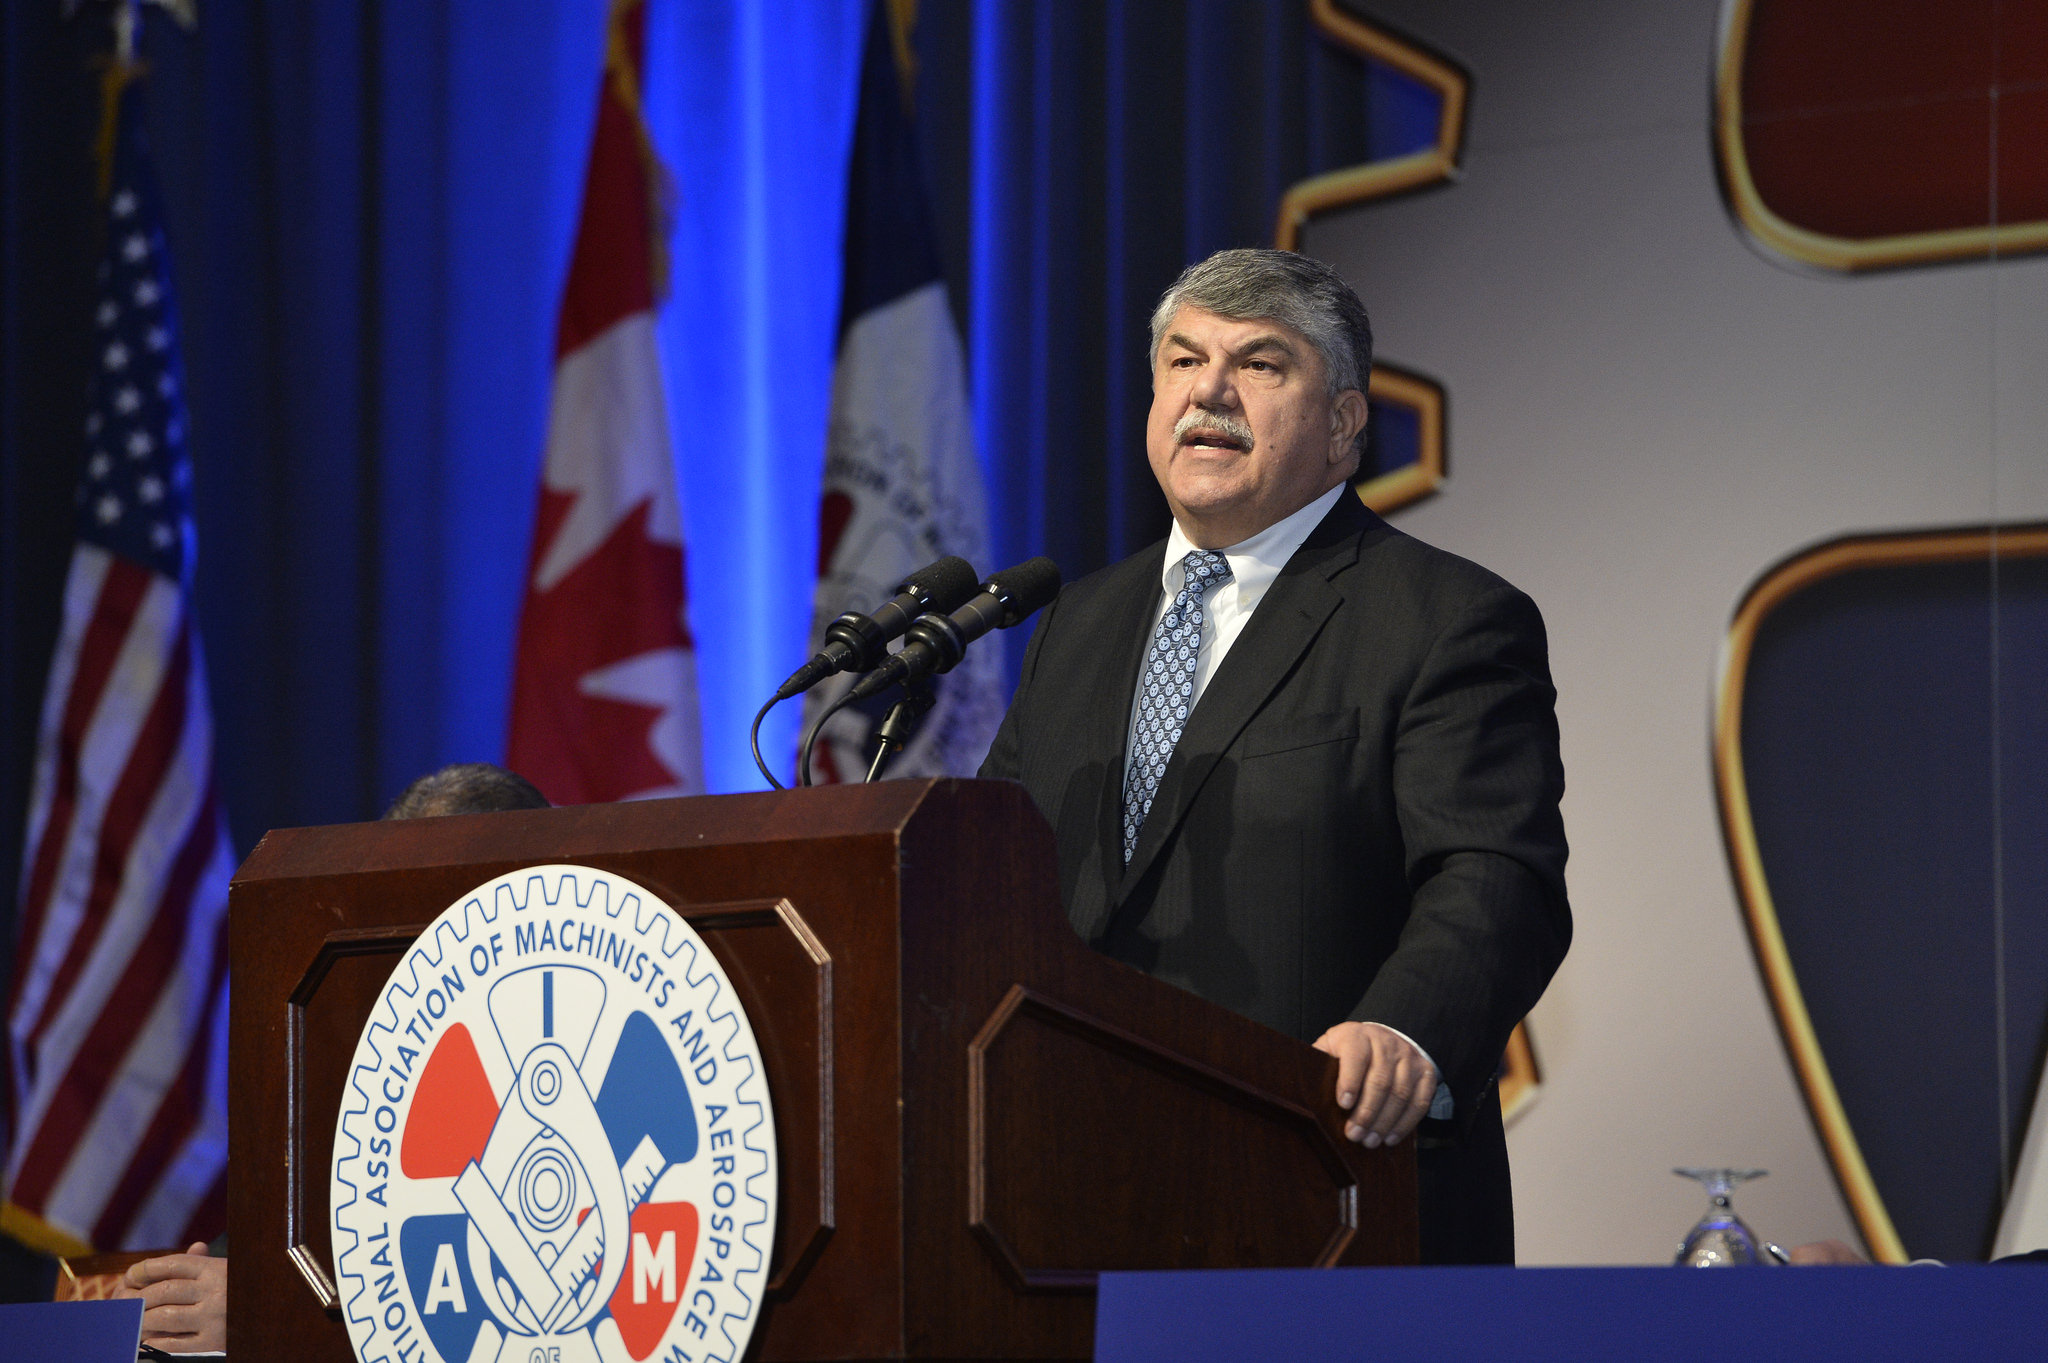 Rich Trumka speaks at Machinists Convention.